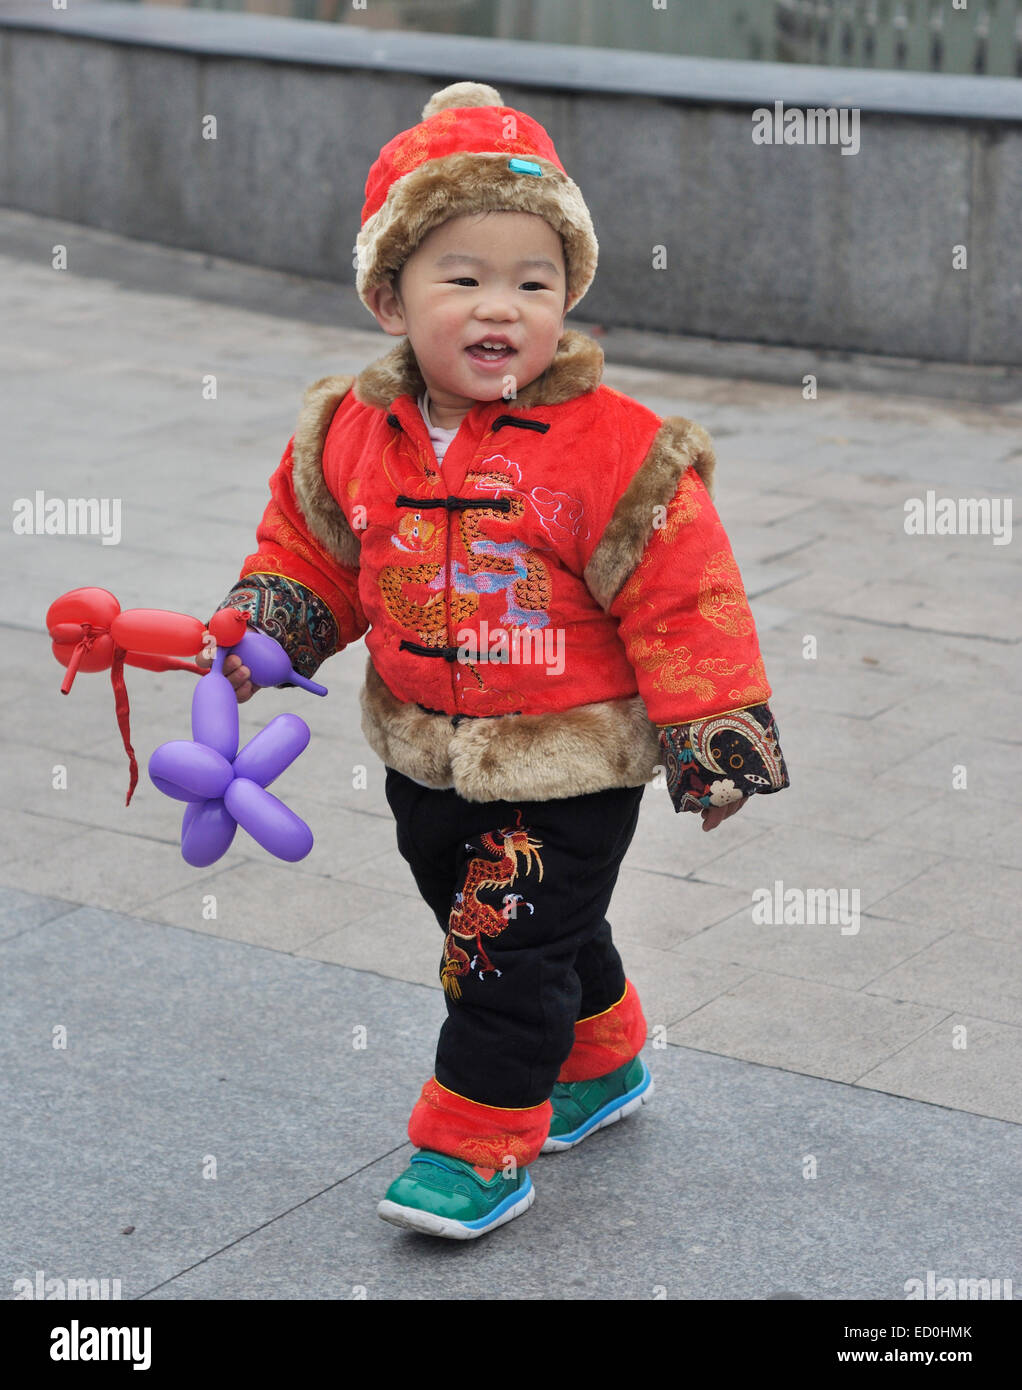 b982fbe1b Cute chinese baby in traditional costume Stock Photo: 76845907 - Alamy